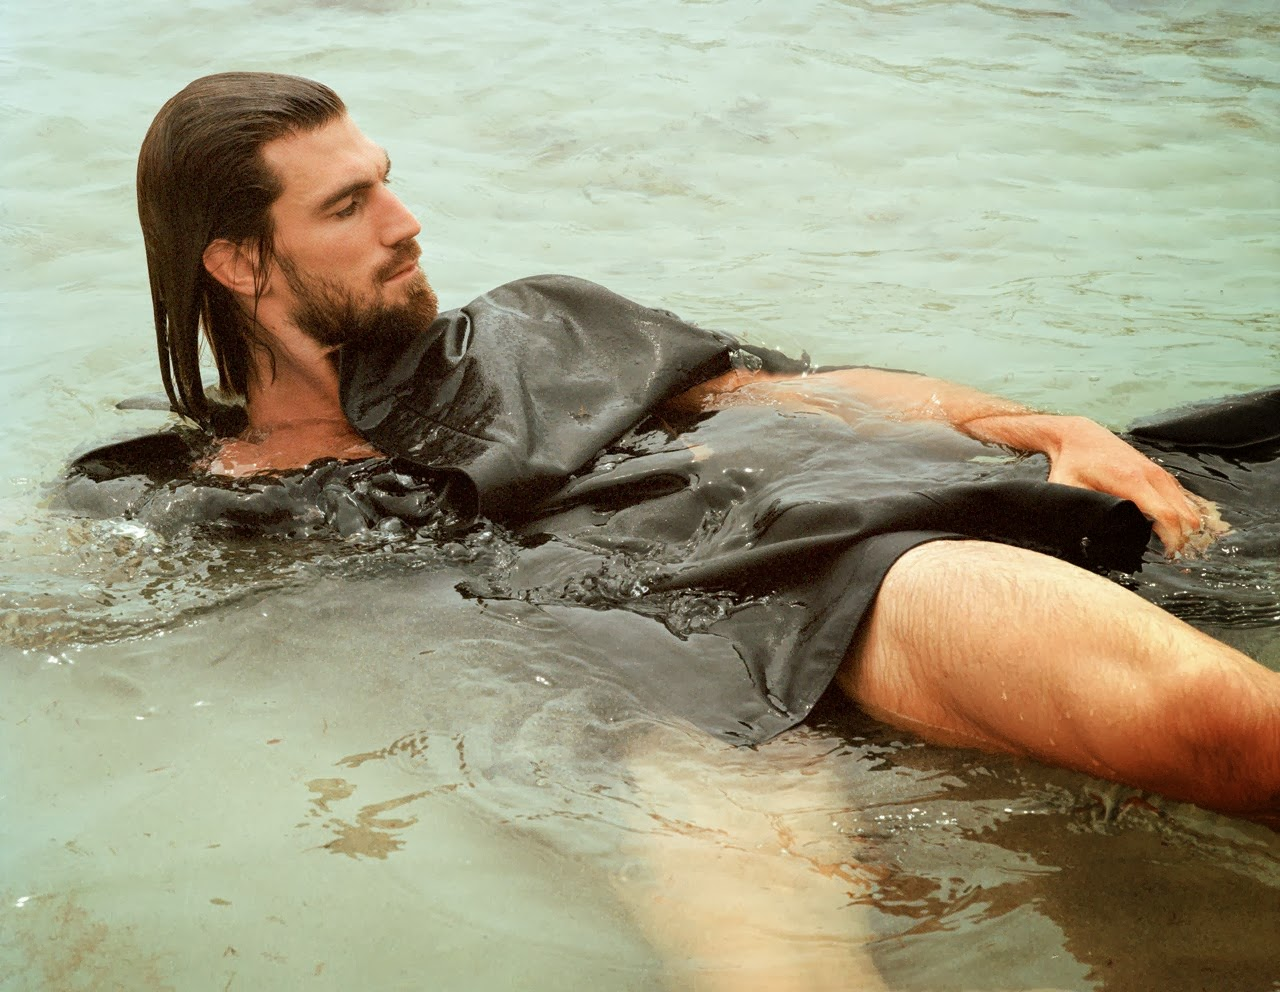 When It Rains It Pours  Bruce Weber  Vman  Fashionably Male-2989